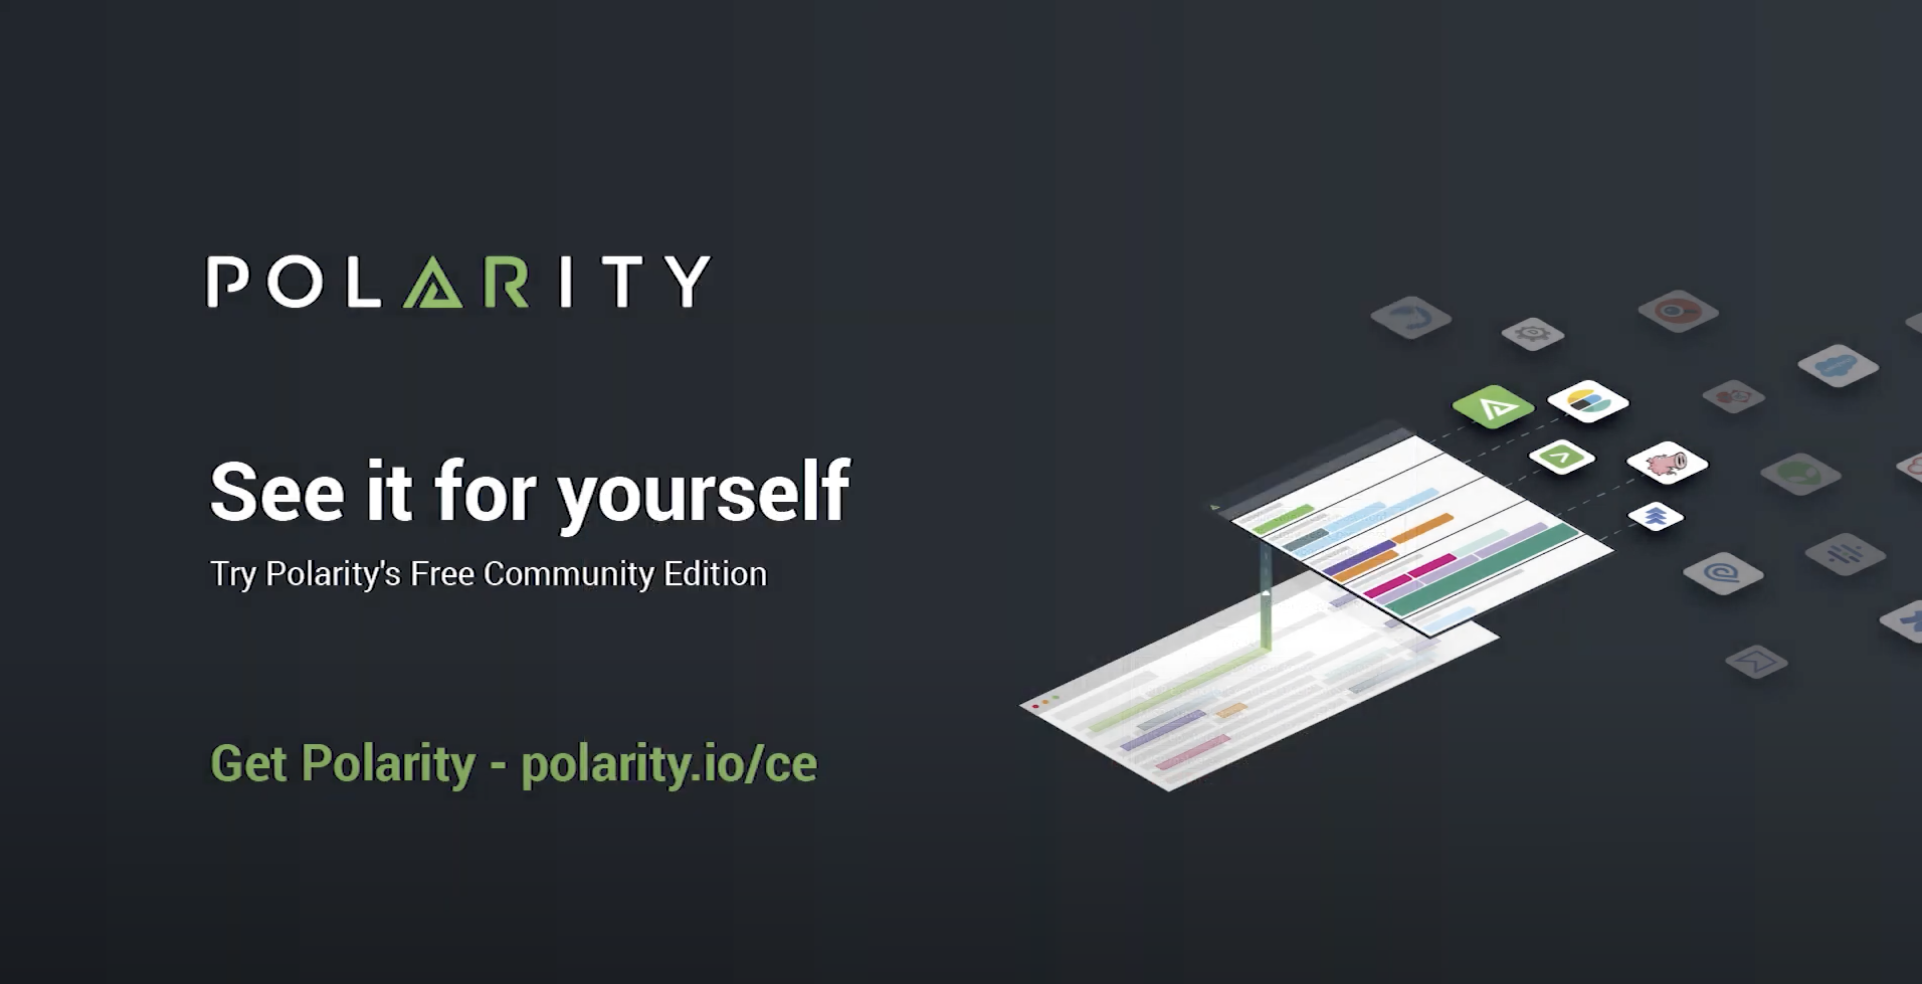 Polarity in Action: Event Triage Use Case  cover image